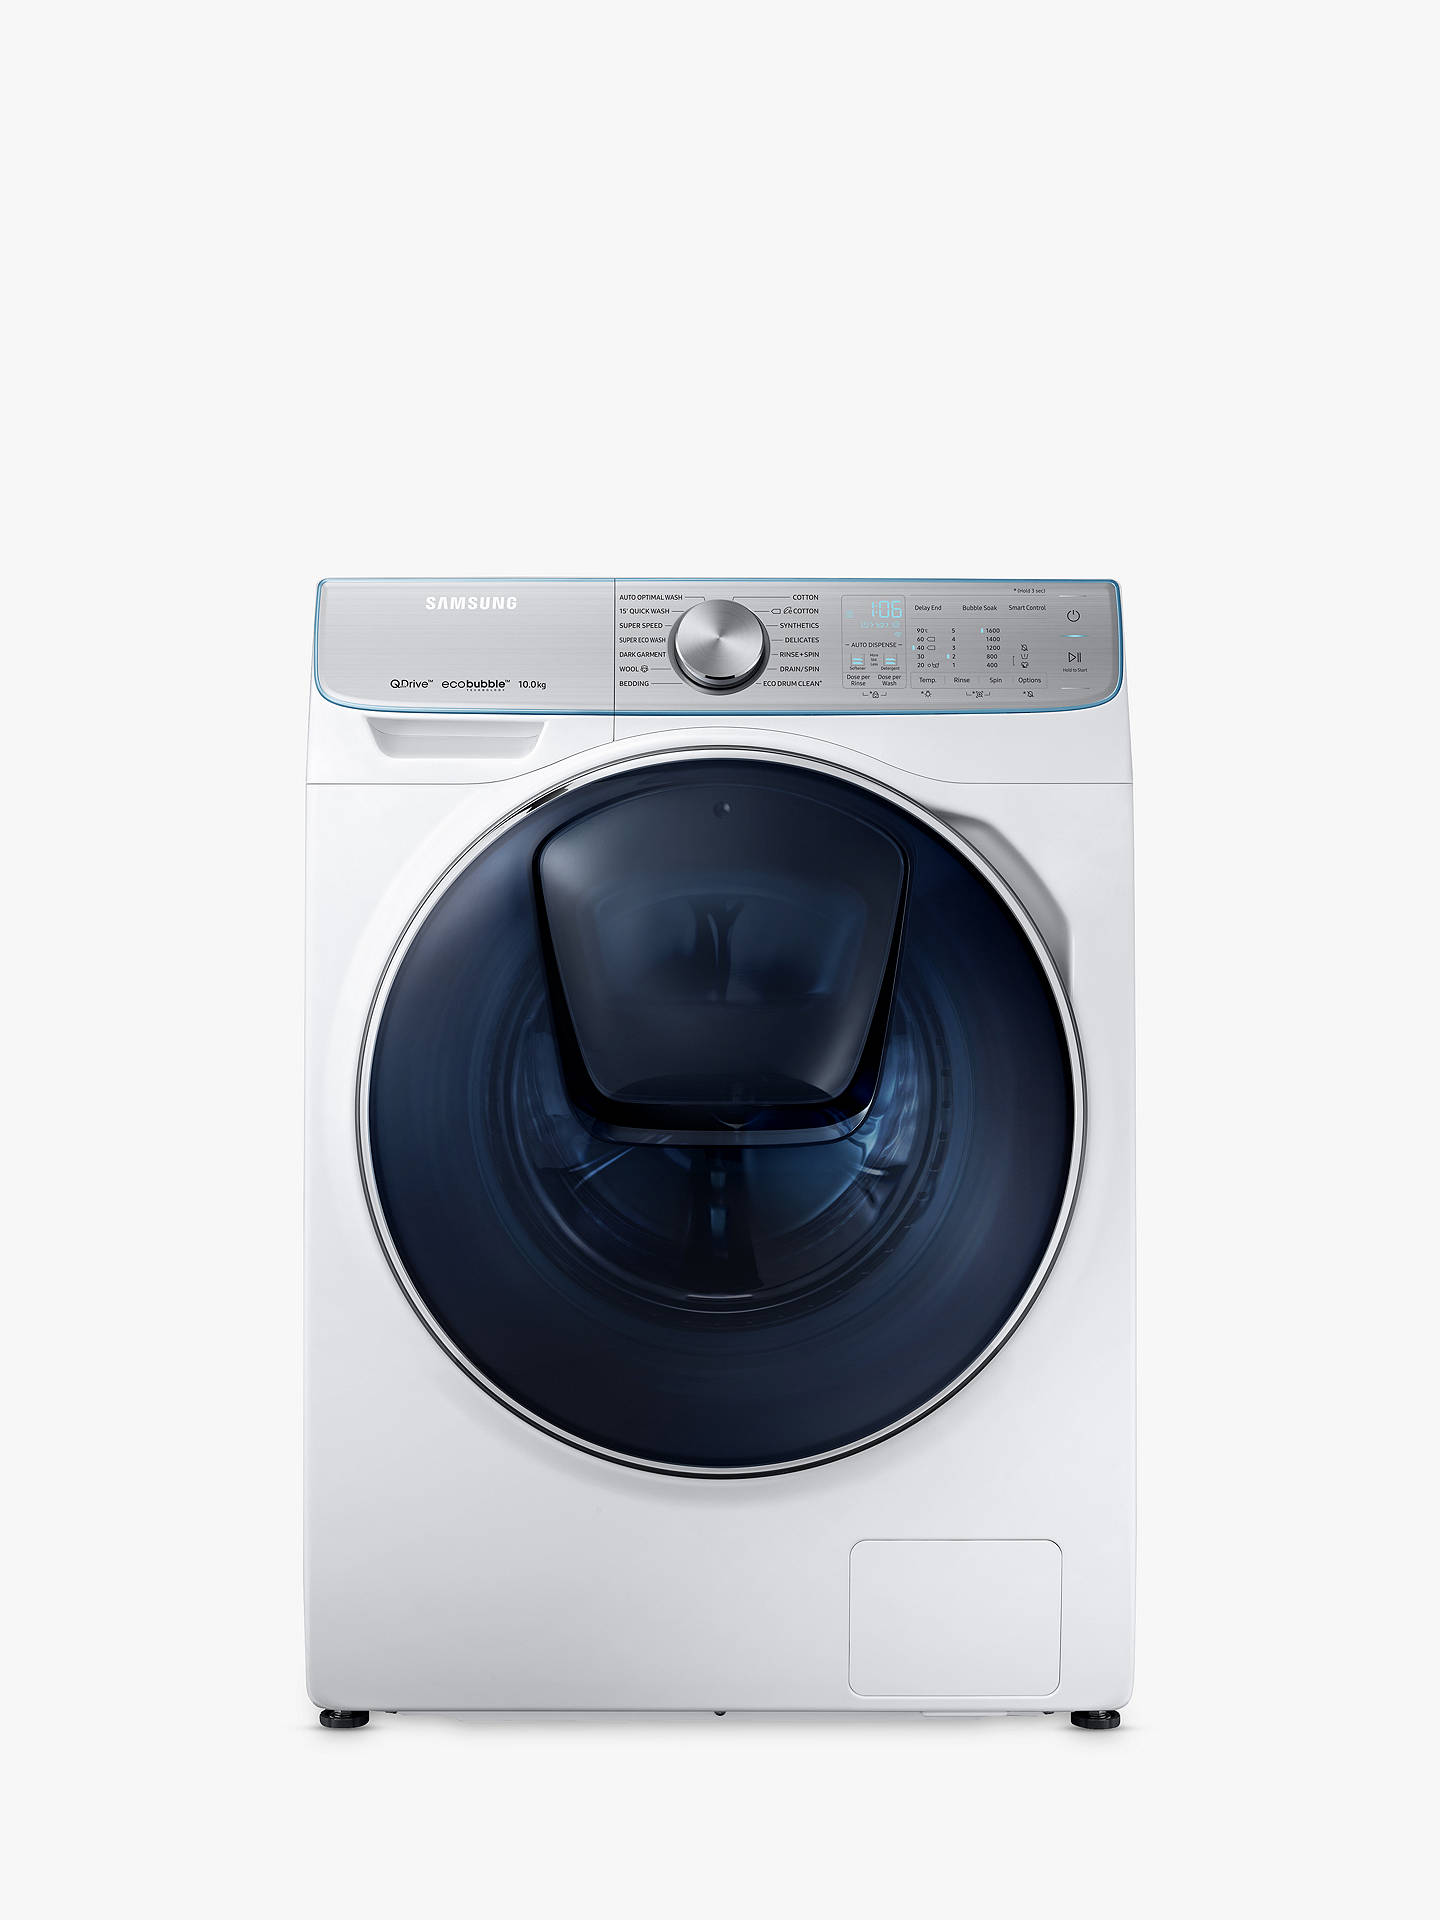 BuySamsung WW10M86DQOA/EU Freestanding QuickDrive Washing Machine, 10kg Load, A+++ Energy Rating, 1600rpm Spin, White Online at johnlewis.com